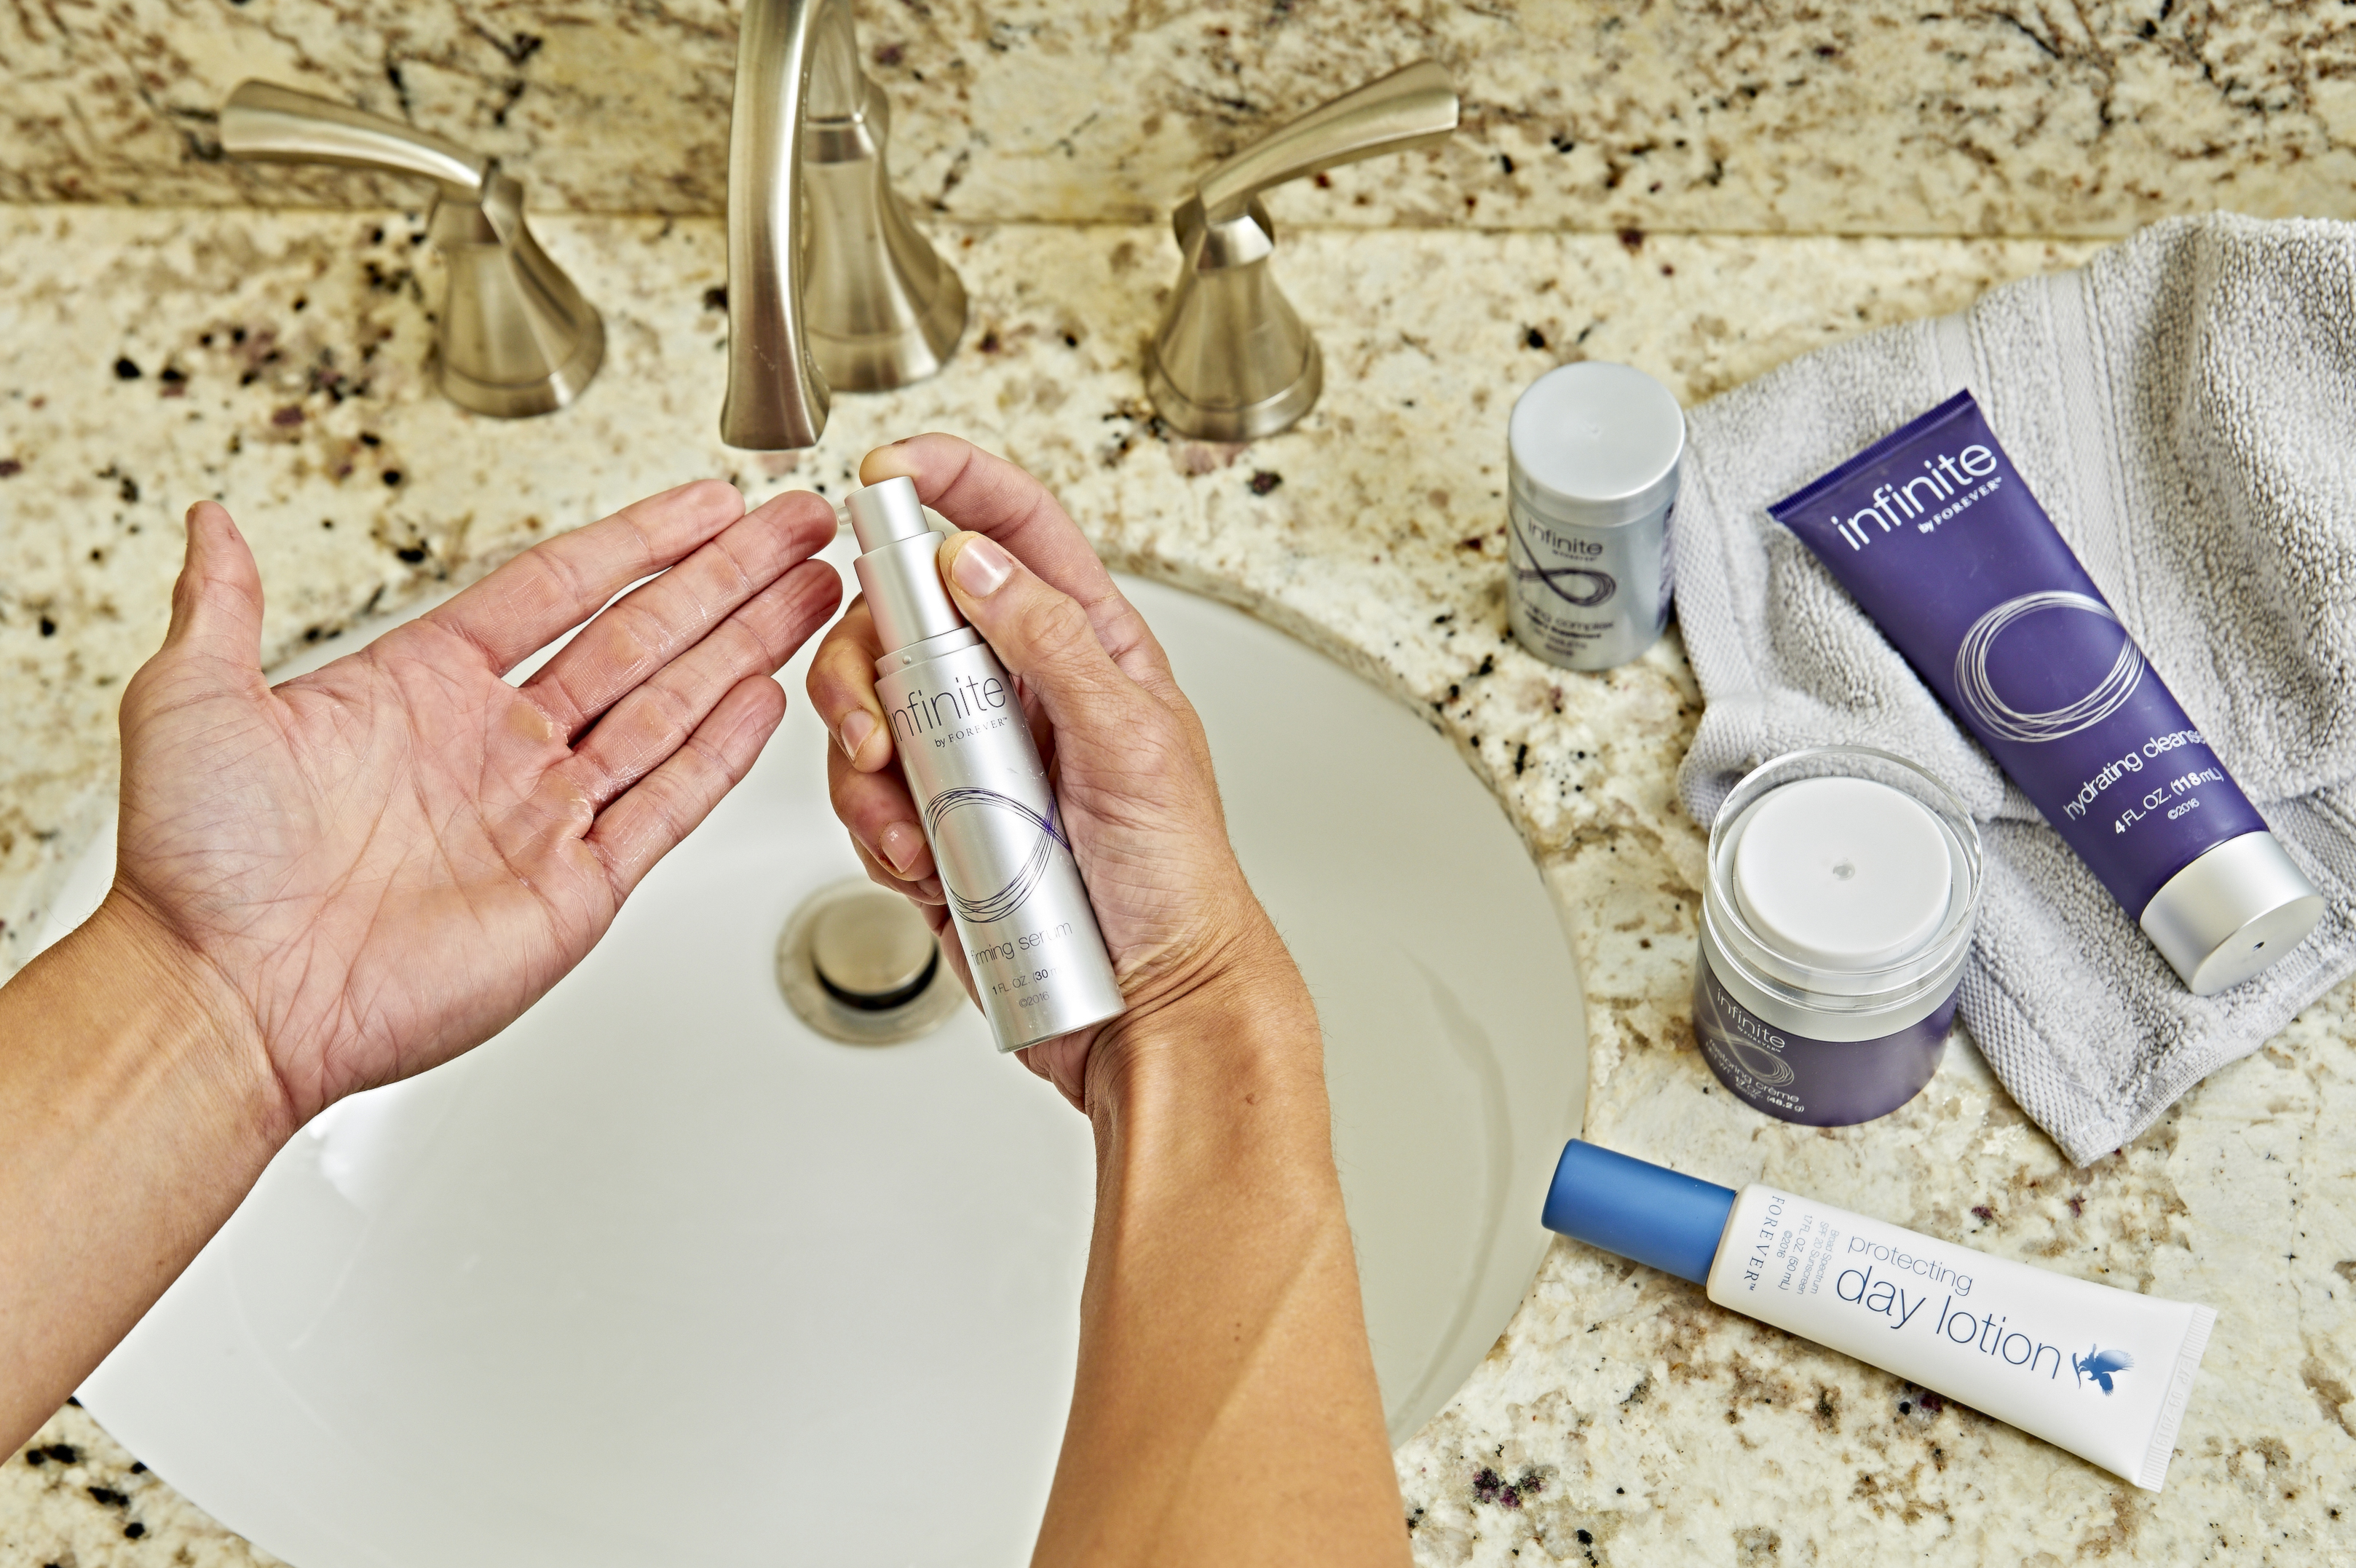 Protecting Day Lotion - overhead 2